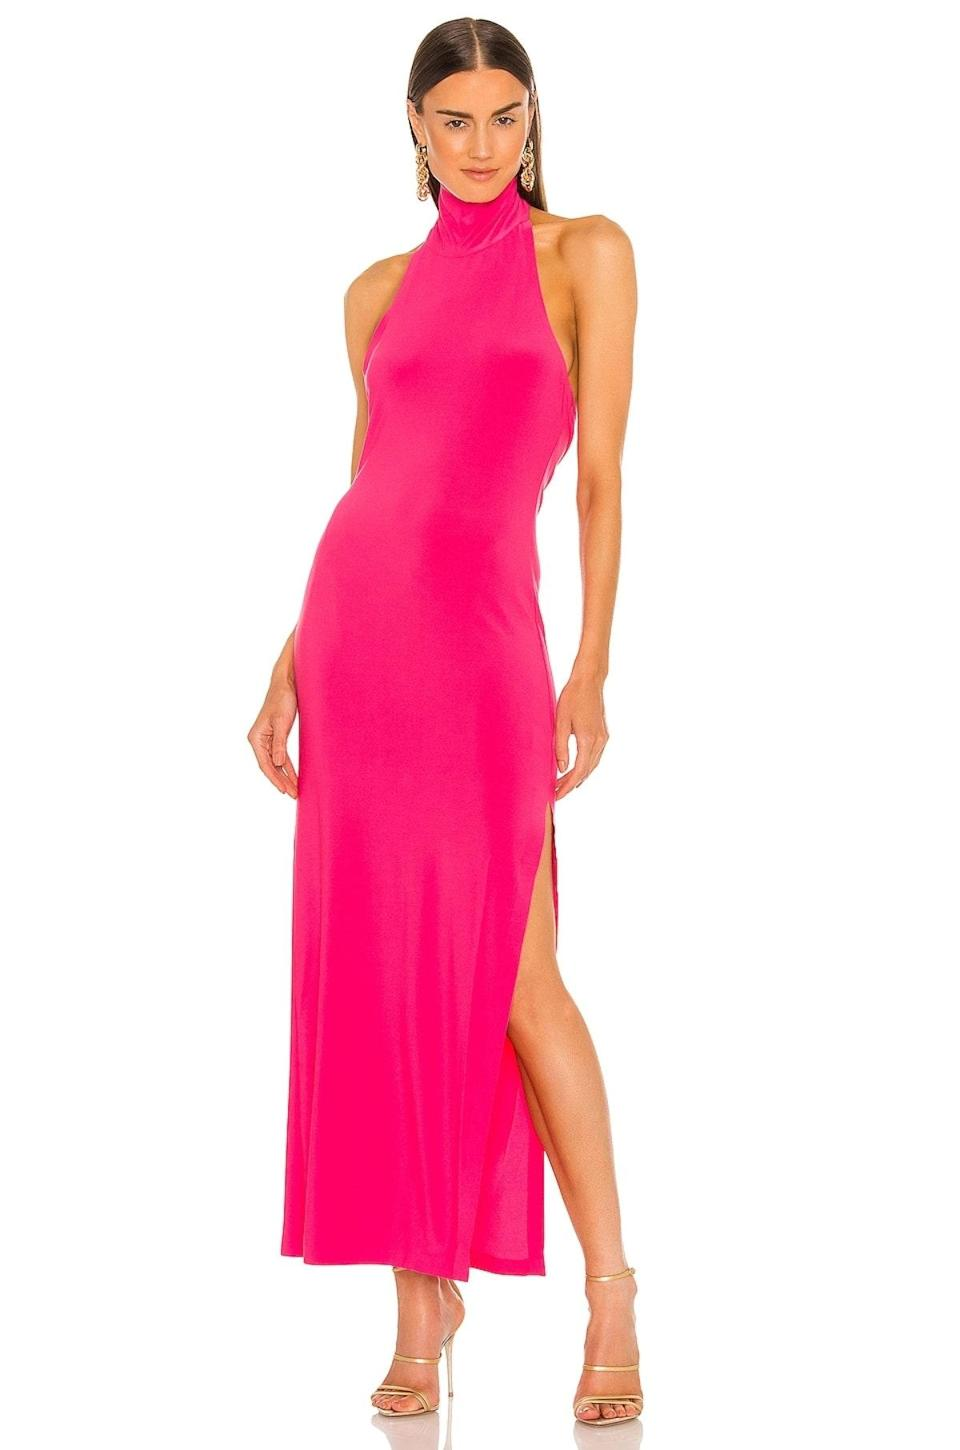 """Usher in turtleneck season with this floor-length dress that's ideal for an indoor reception or black-tie dress code. $145, Revolve. <a href=""""https://www.revolve.com/norma-kamali-halter-turtle-gown/dp/NKAM-WD286/"""" rel=""""nofollow noopener"""" target=""""_blank"""" data-ylk=""""slk:Get it now!"""" class=""""link rapid-noclick-resp"""">Get it now!</a>"""